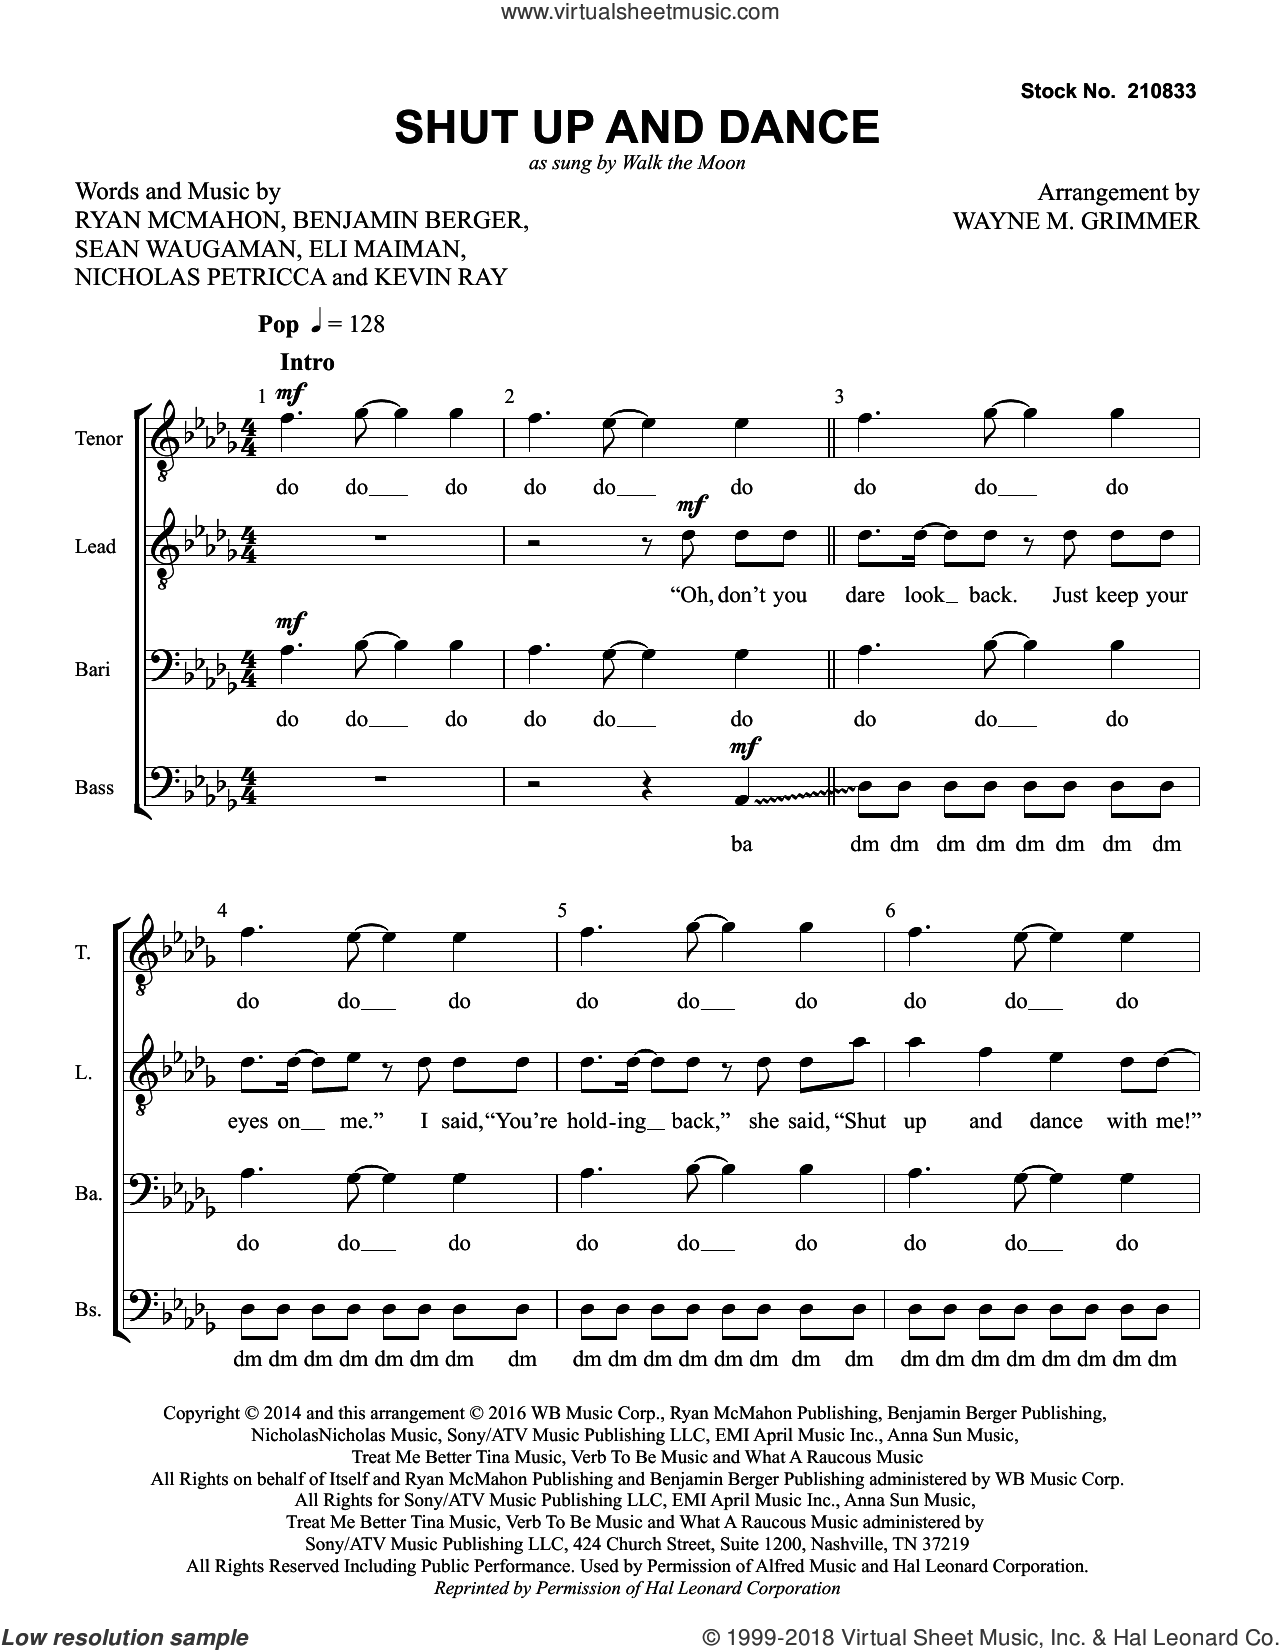 Shut Up and Dance (arr. Wayne Grimmer) sheet music for choir (TTBB: tenor, bass) by Walk The Moon, Wayne Grimmer, Ben Berger, Eli Maiman, Kevin Ray, Nicholas Petricca, Ryan McMahon and Sean Waugaman, intermediate skill level